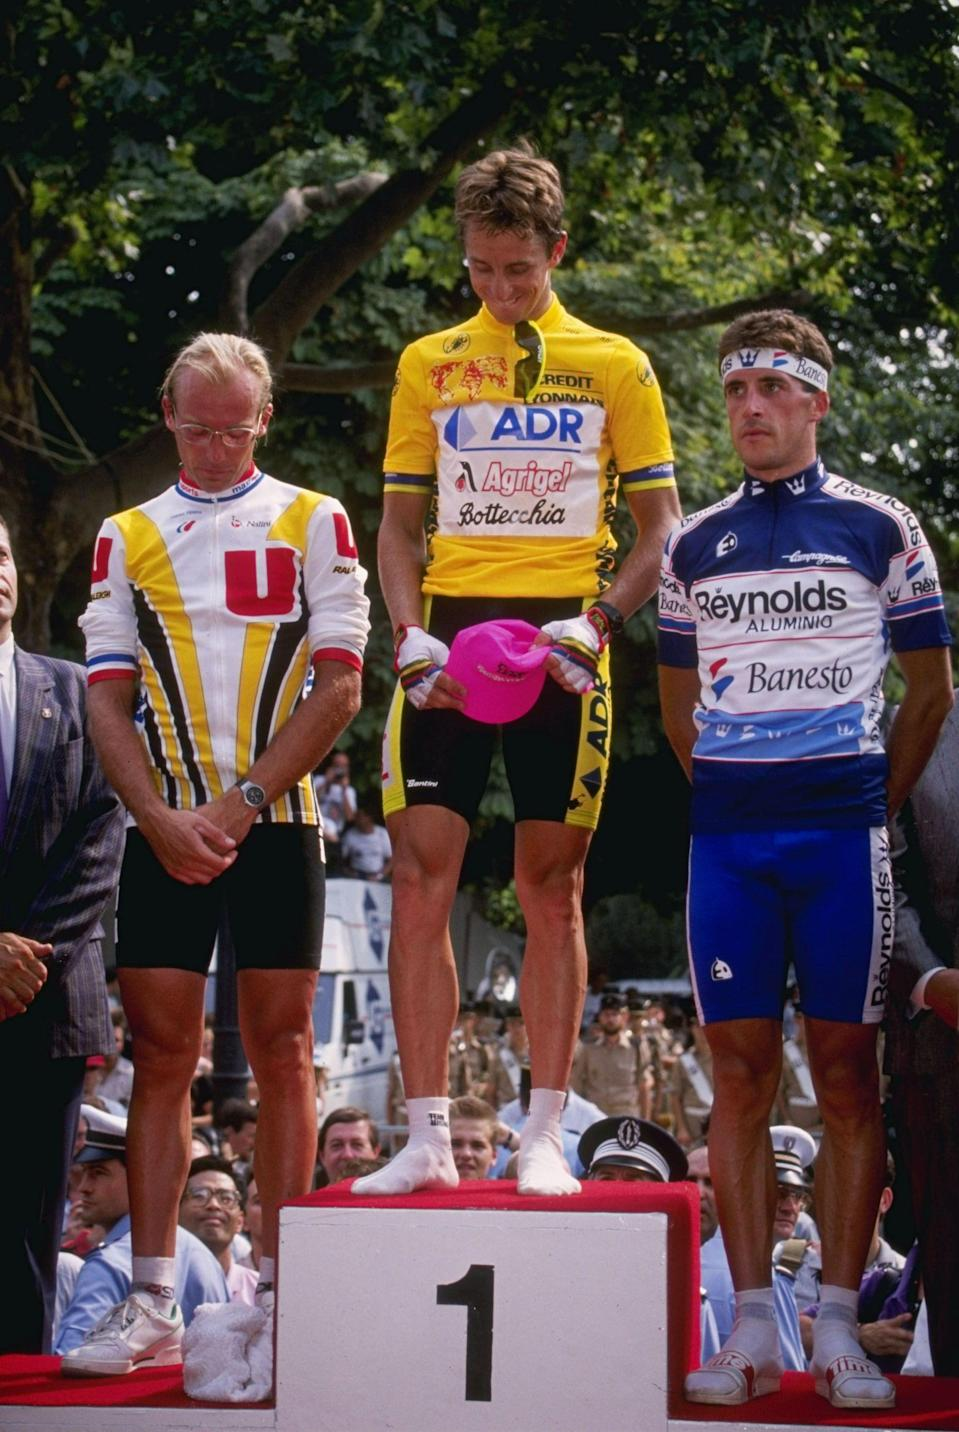 """<p>The 2020 Tour de France featured a remarkable come-from-behind win in the penultimate stage when Tadej Pogačar destroyed the field in the race's only time trial to take the yellow jersey. Here, Pogačar showed he was clearly the strongest rider in the race. </p><p>But his stunning ride into the race lead is only the latest in a history of unlooked-for late moves that, in the old cliché, snatched victory from the jaws of defeat. </p><p>Here are four more unforgettable Tour finishes.</p><p><a class=""""link rapid-noclick-resp"""" href=""""https://join.bicycling.com/pubs/HR/BIC/BIC1_Plans.jsp?cds_page_id=251593&cds_mag_code=BIC&cds_tracking_code=edit-button-tour-de-france-biggest-comebacks"""" rel=""""nofollow noopener"""" target=""""_blank"""" data-ylk=""""slk:Sign up for Bicycling All Access to become a stronger, healthier rider 🚵♂️🚵♀️"""">Sign up for Bicycling All Access to become a stronger, healthier rider 🚵♂️🚵♀️</a></p>"""